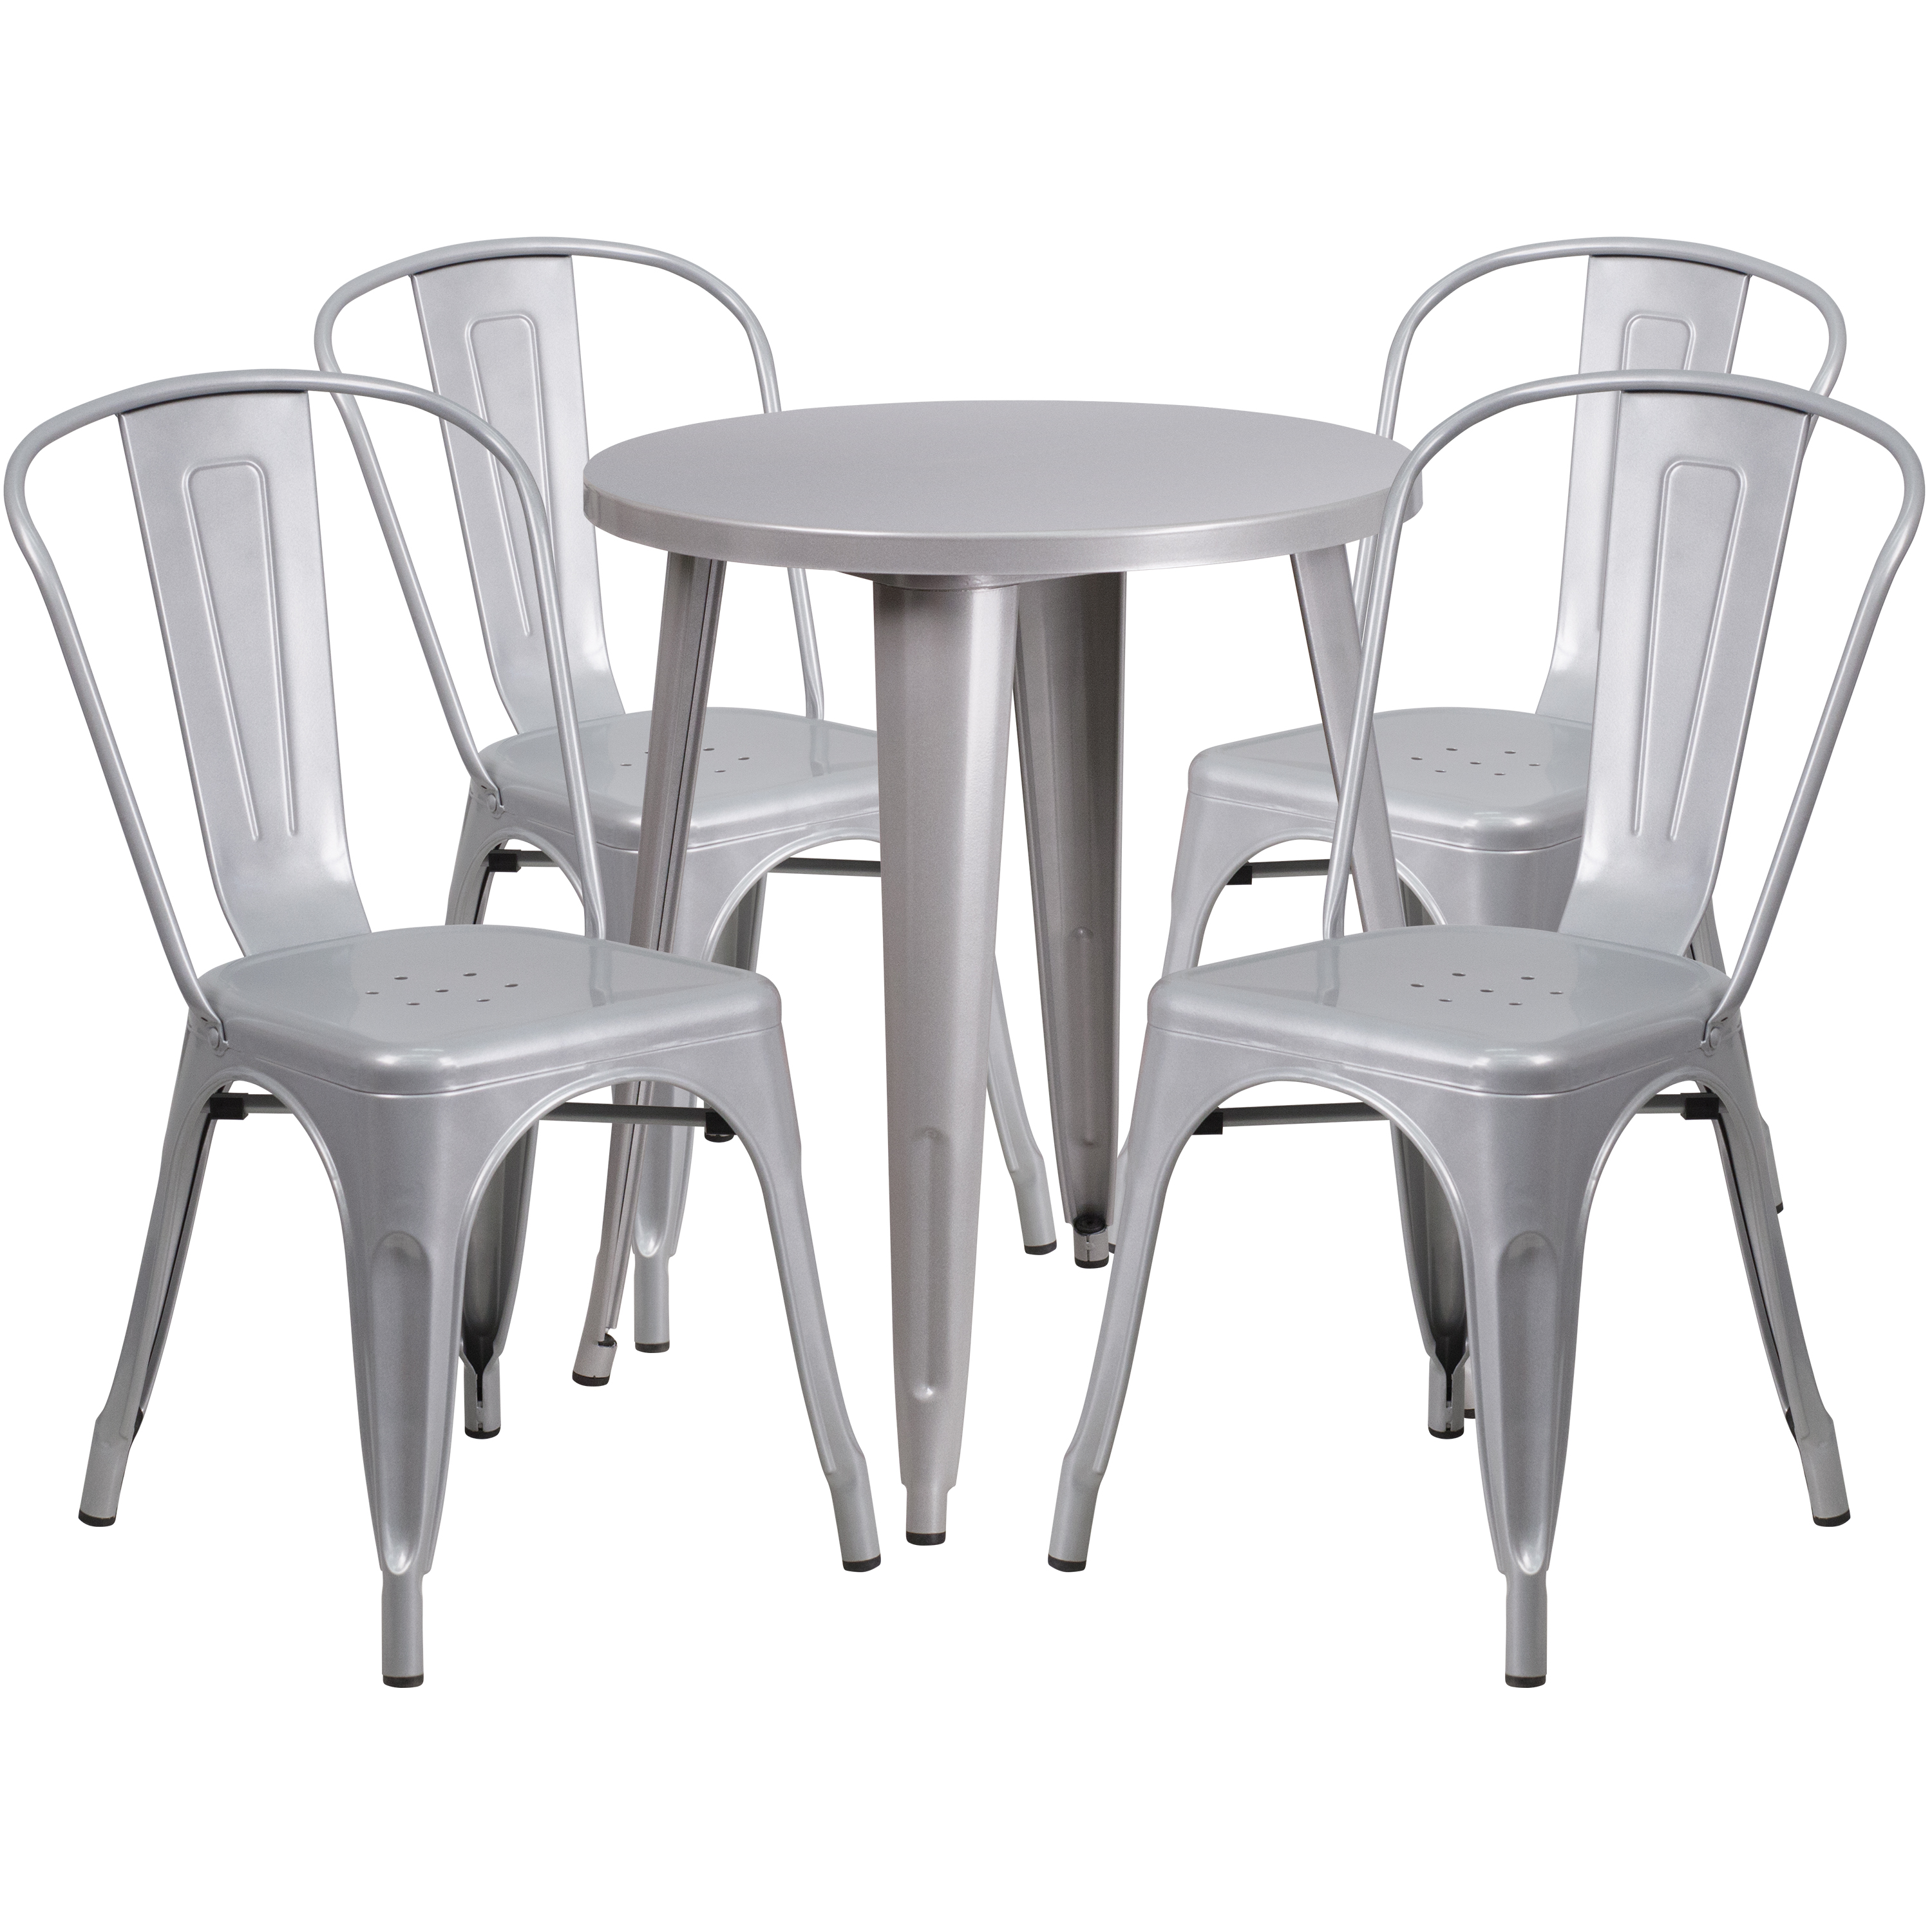 """Flash Furniture 24"""" Round Metal Indoor-Outdoor Table Set with 4 Cafe Chairs, Multiple Colors"""